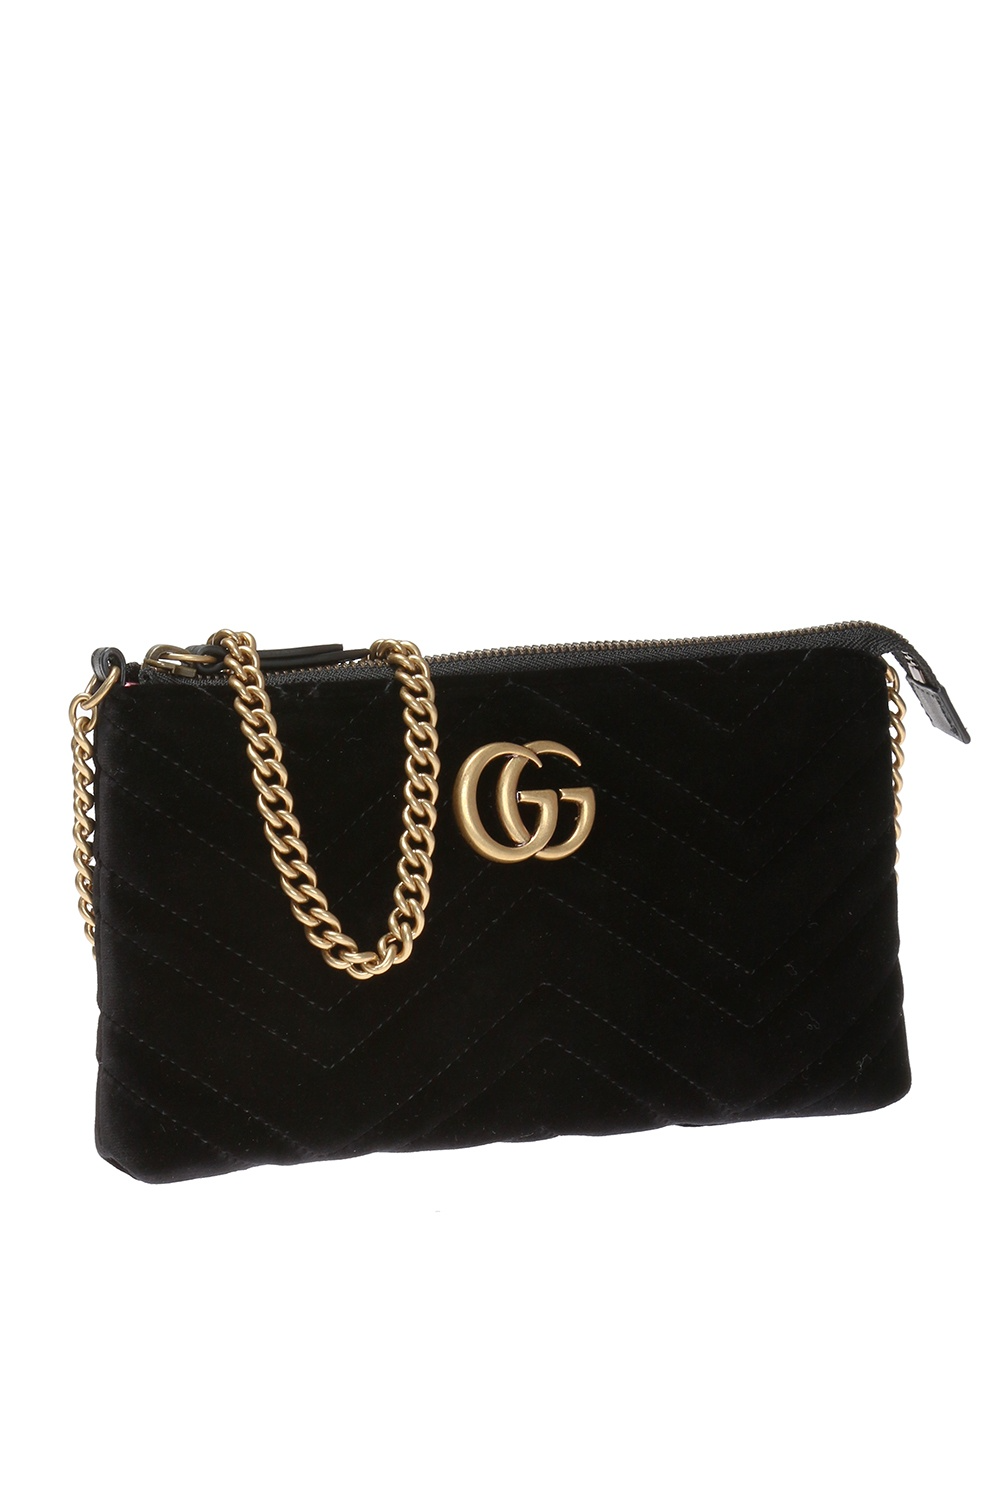 Túi Gucci GG Marmont Shoulder Bag Black 443447 9QIDT 1000